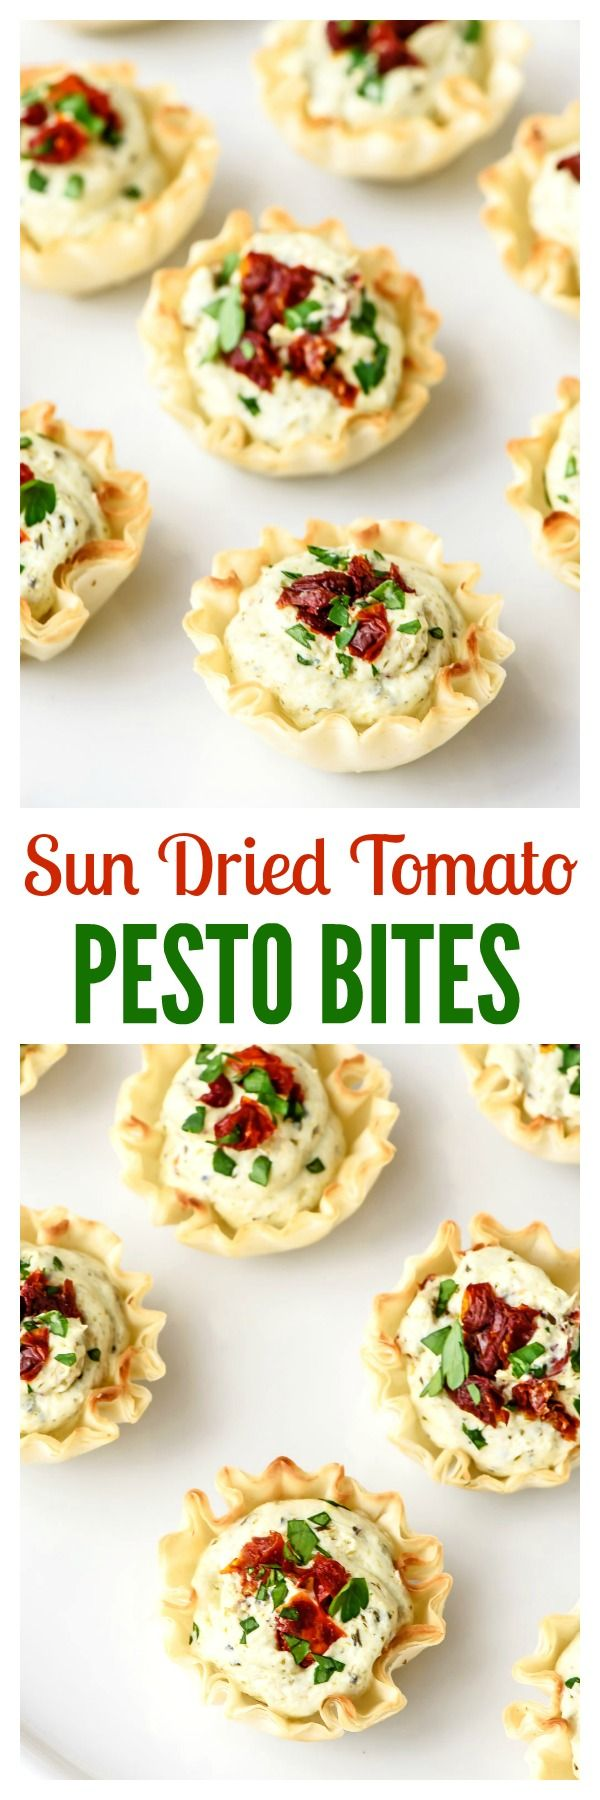 Skinny Sun Dried Tomato Pesto Bites. Flakey phyllo dough with cream cheese pesto filling. Easy and addictive! Greek yogurt makes these bites healthier, but no one will ever suspect.